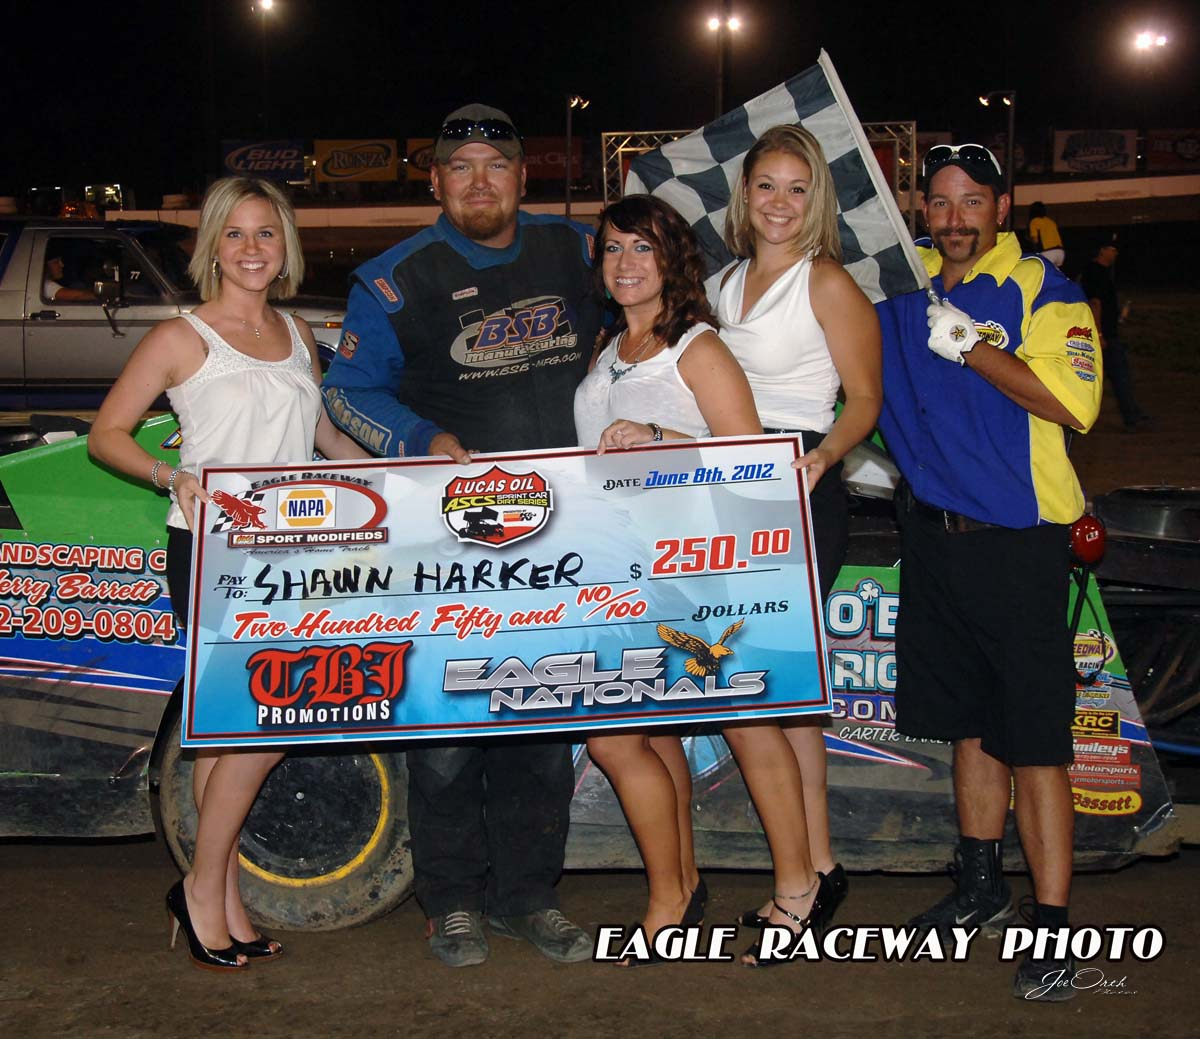 eagle-6-8-12-632-shawn-harker-with-miss-nebraska-cup-deanne-kathol-and-finalist-elle-patocka-and-lindsey-flodman-and-flagman-billy-lloyd